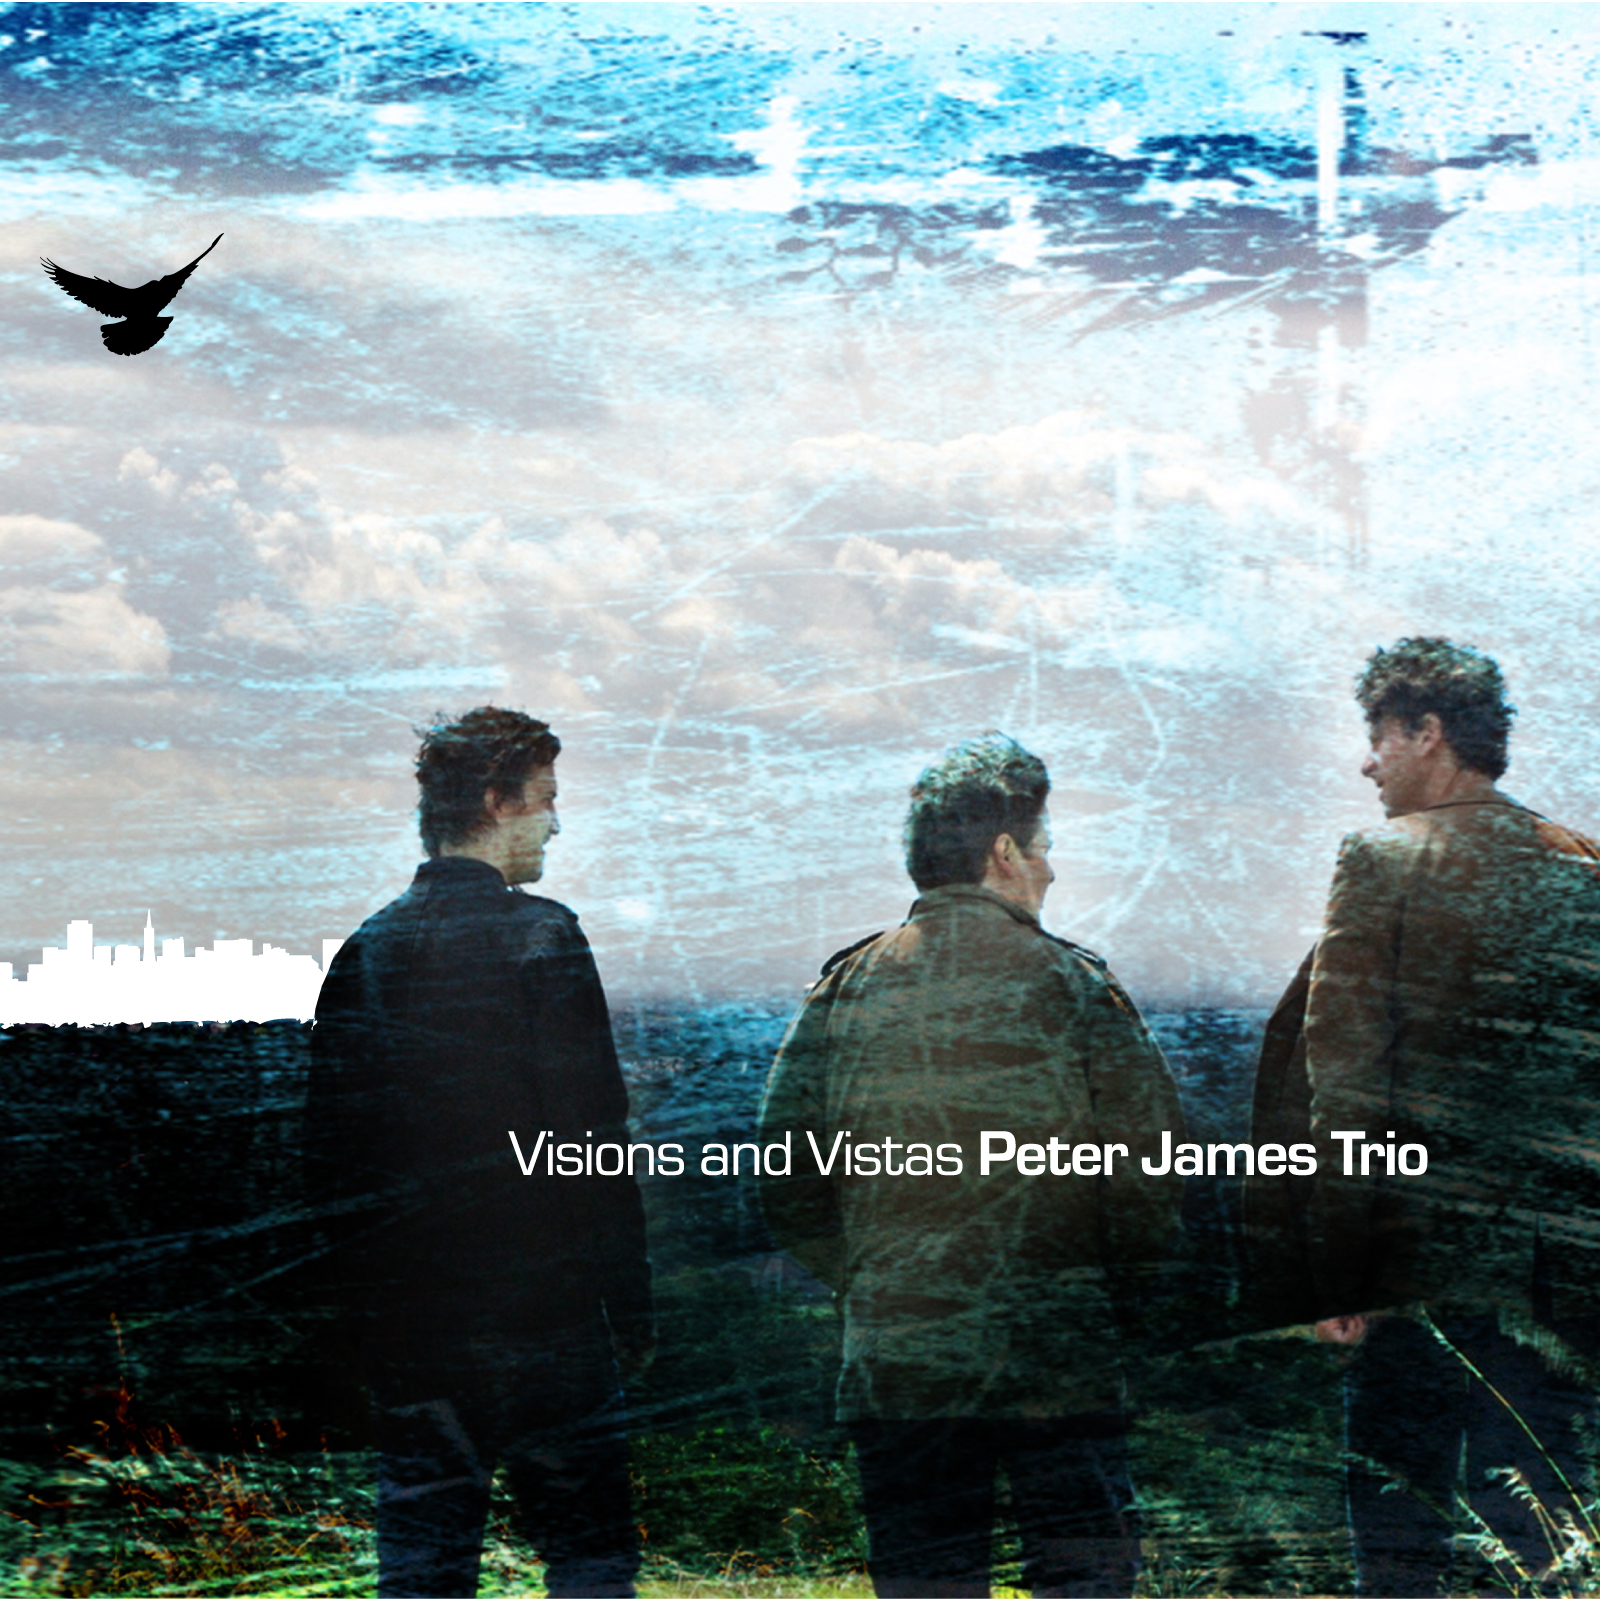 (2008) Peter James Trio - Visions and Vistas